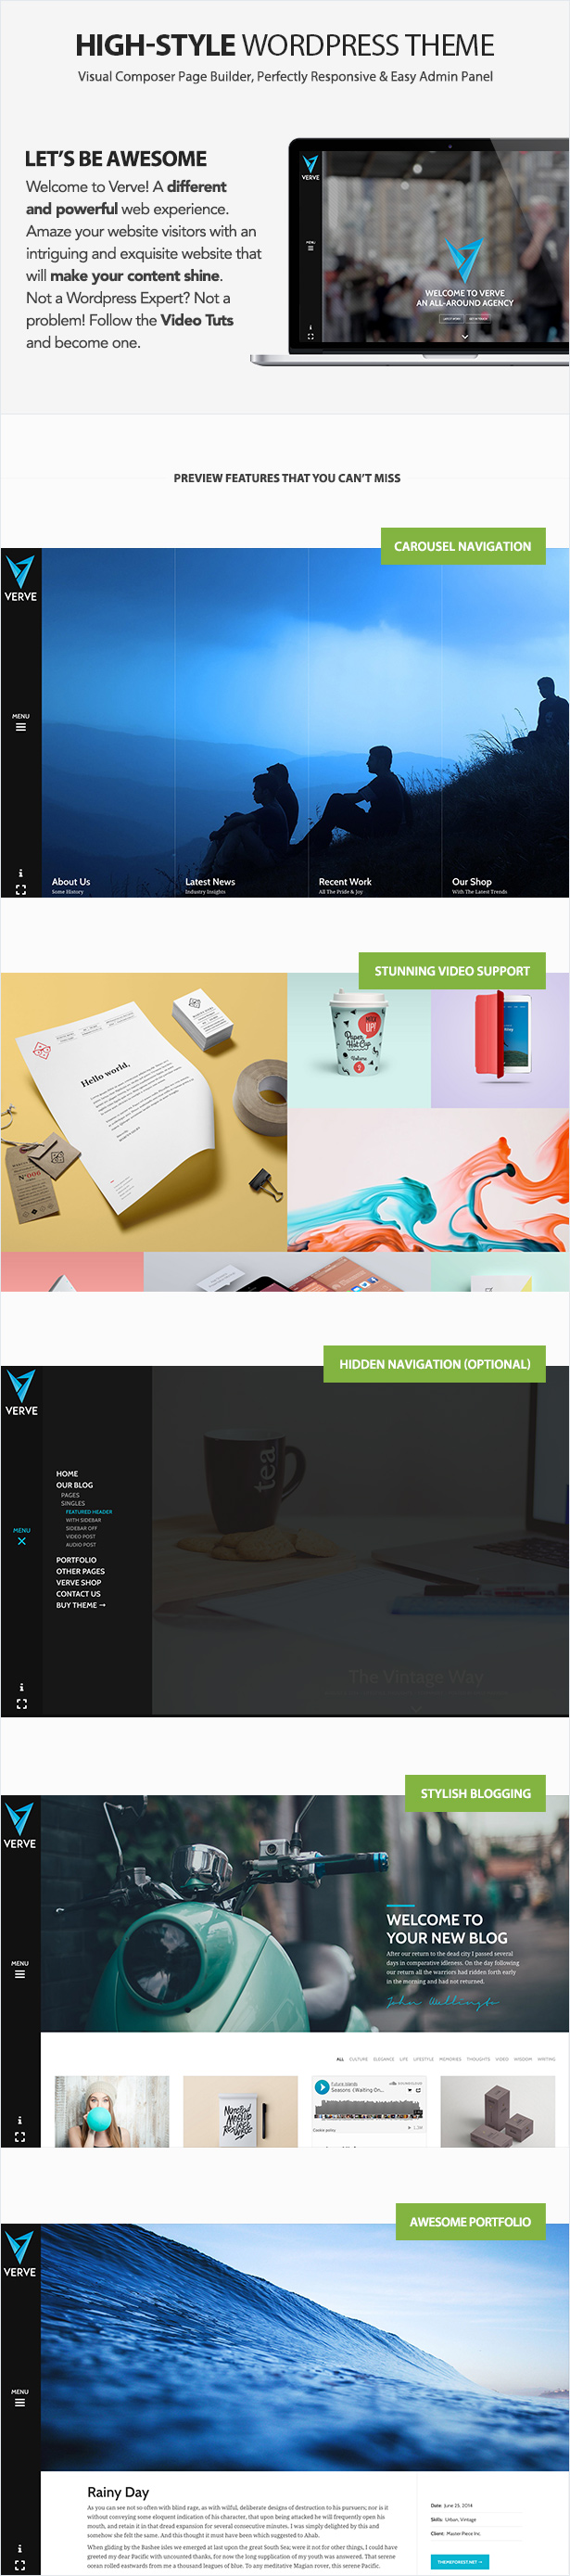 Verve - High-Style WordPress Theme - 2